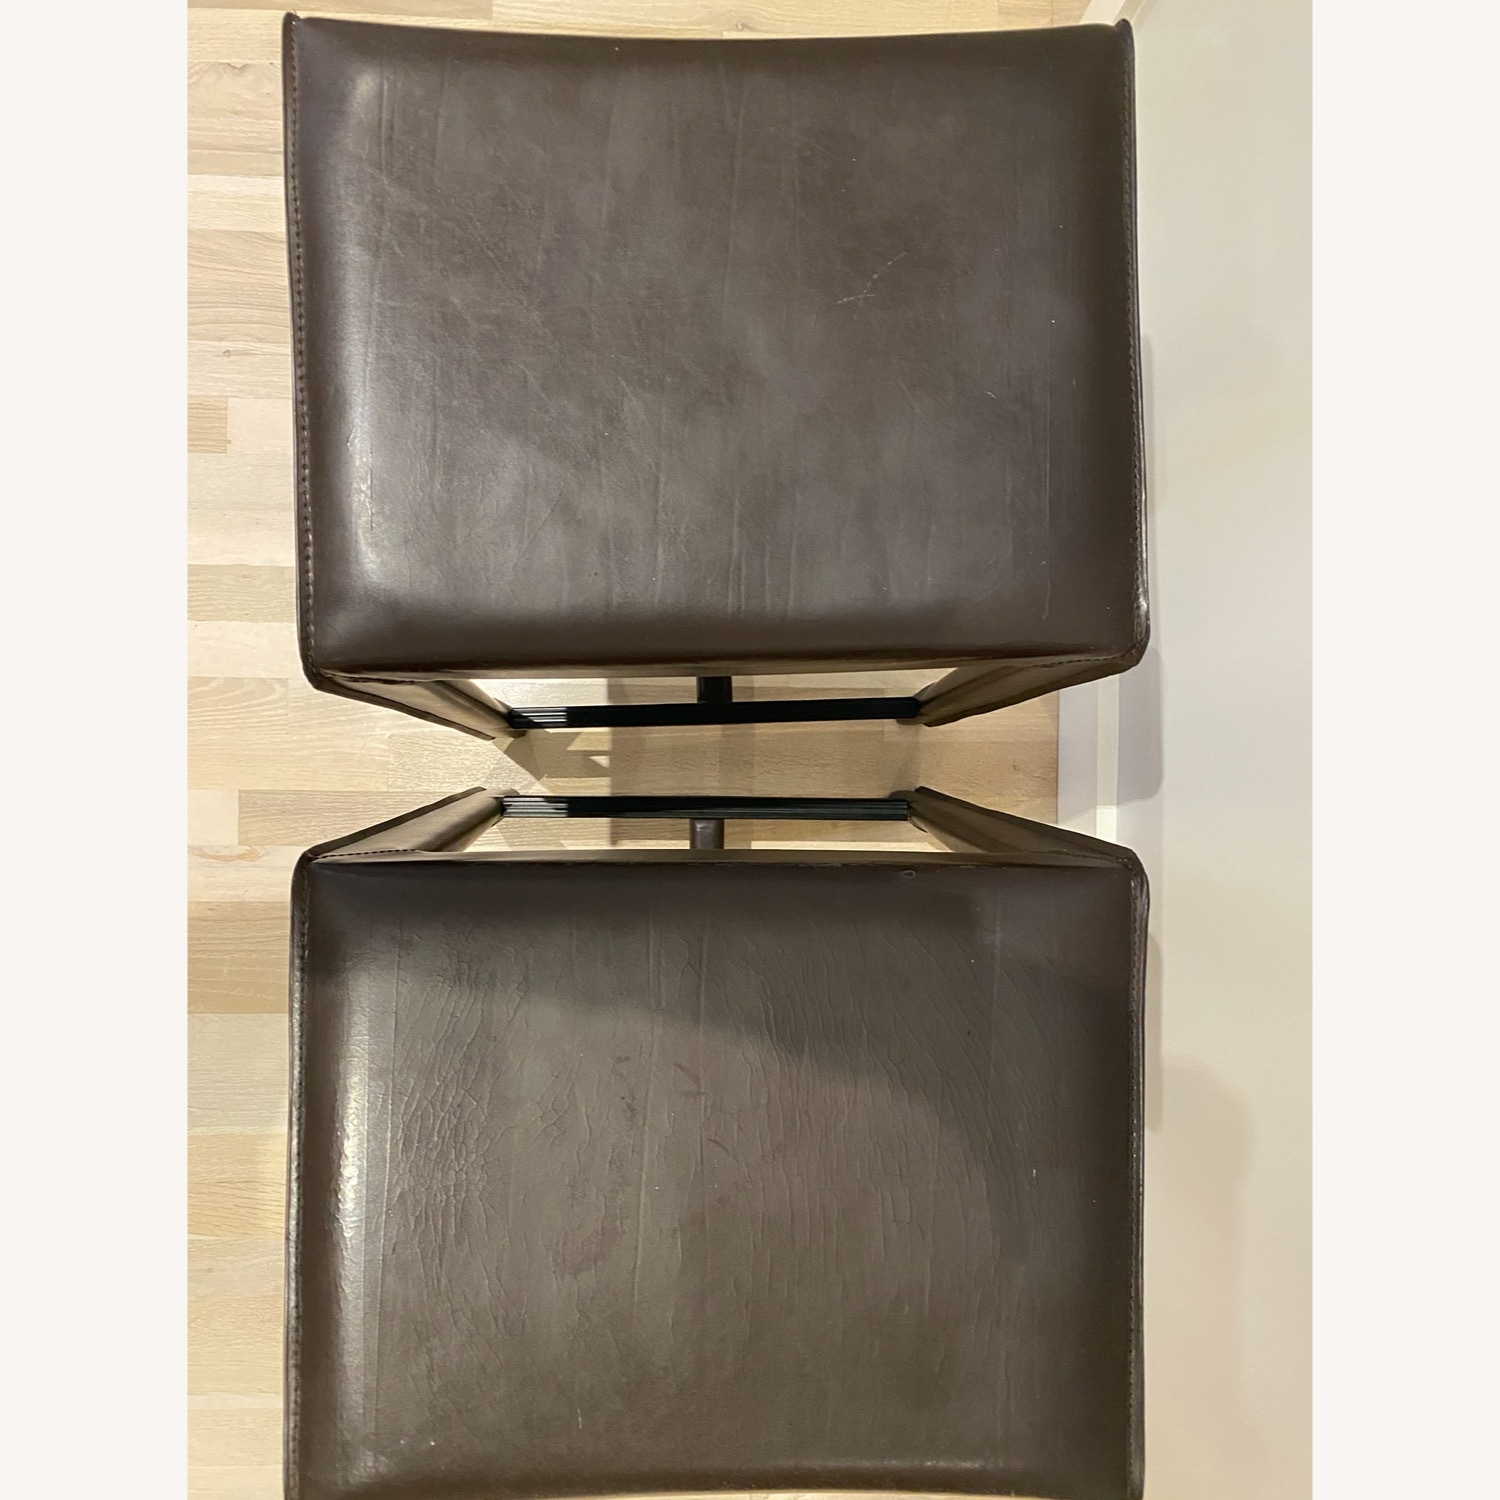 Set of Crate & Barrel Backless Counter Stools - image-4